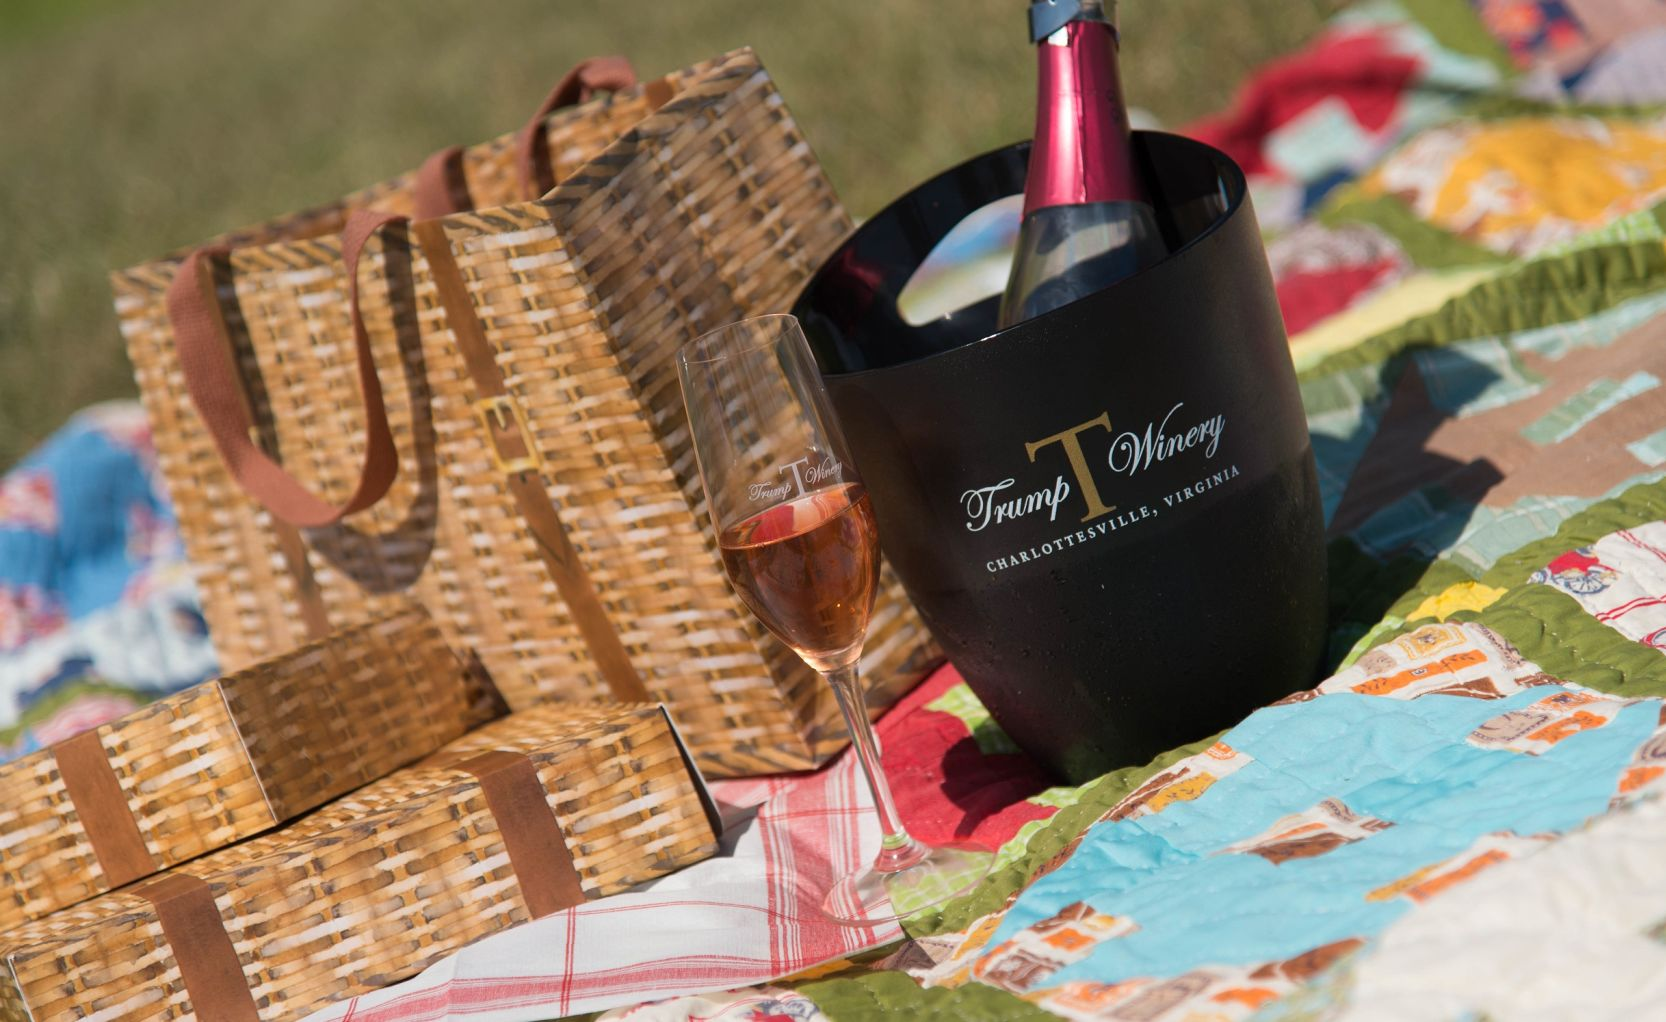 Trump Wine Bottles and Glass with Picnic Basket